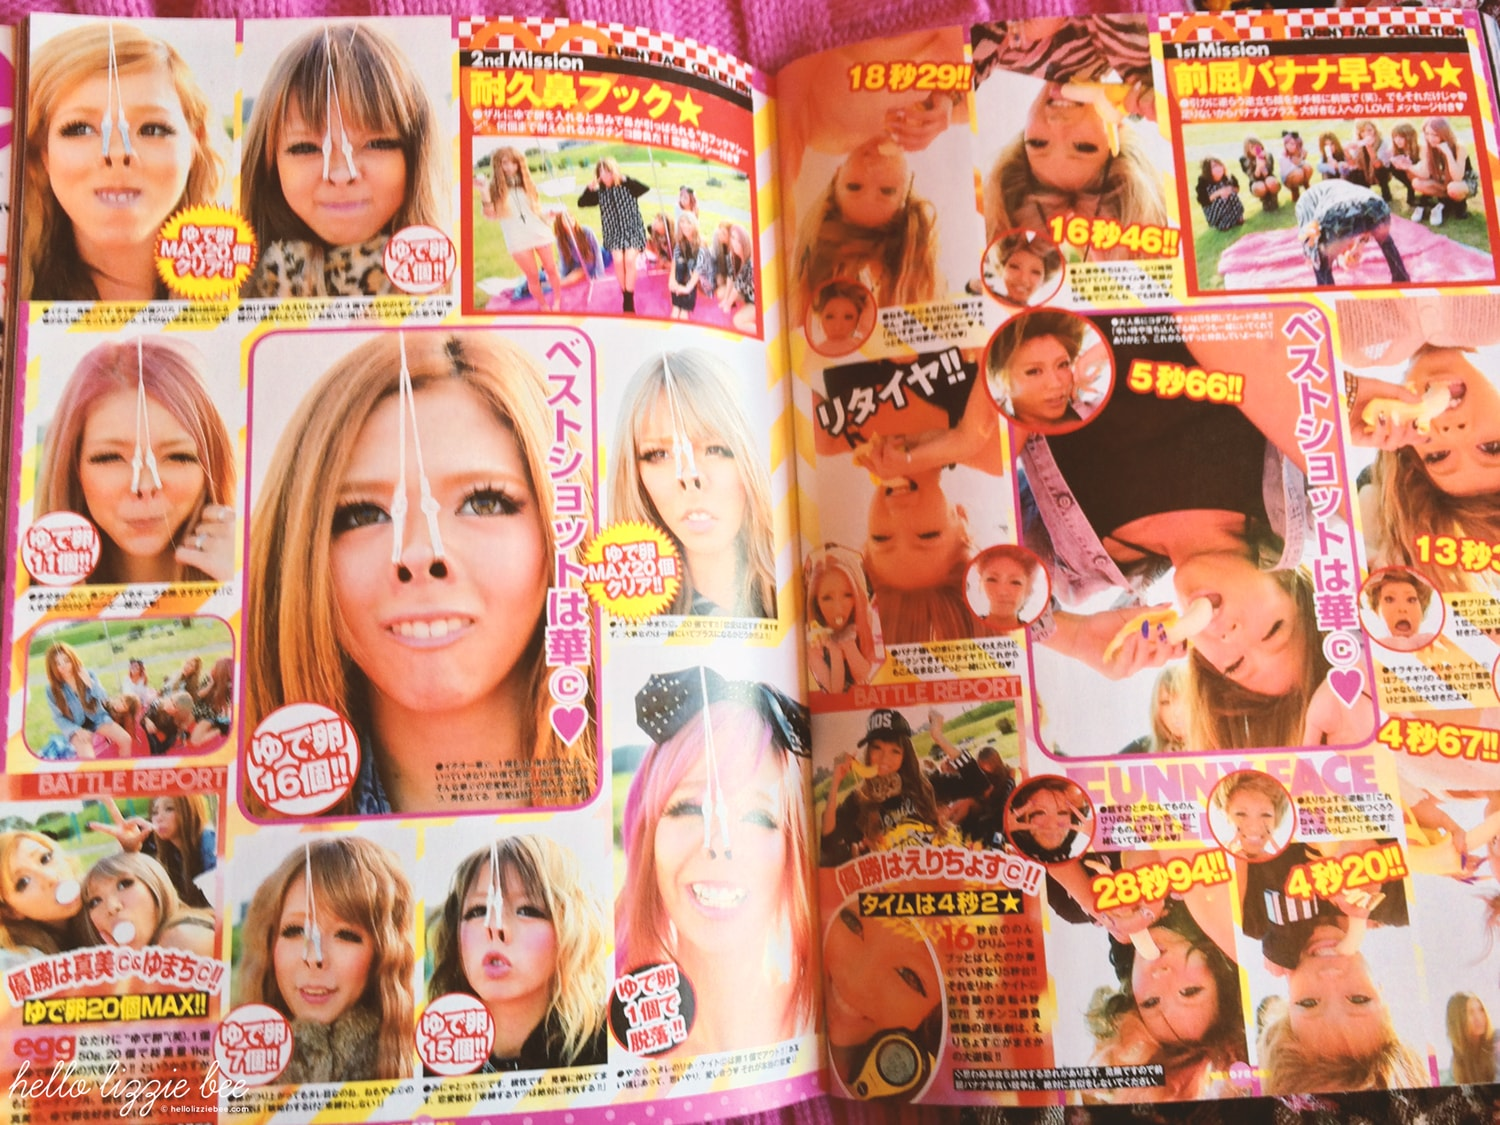 EGG gyaru magazine, funny faces